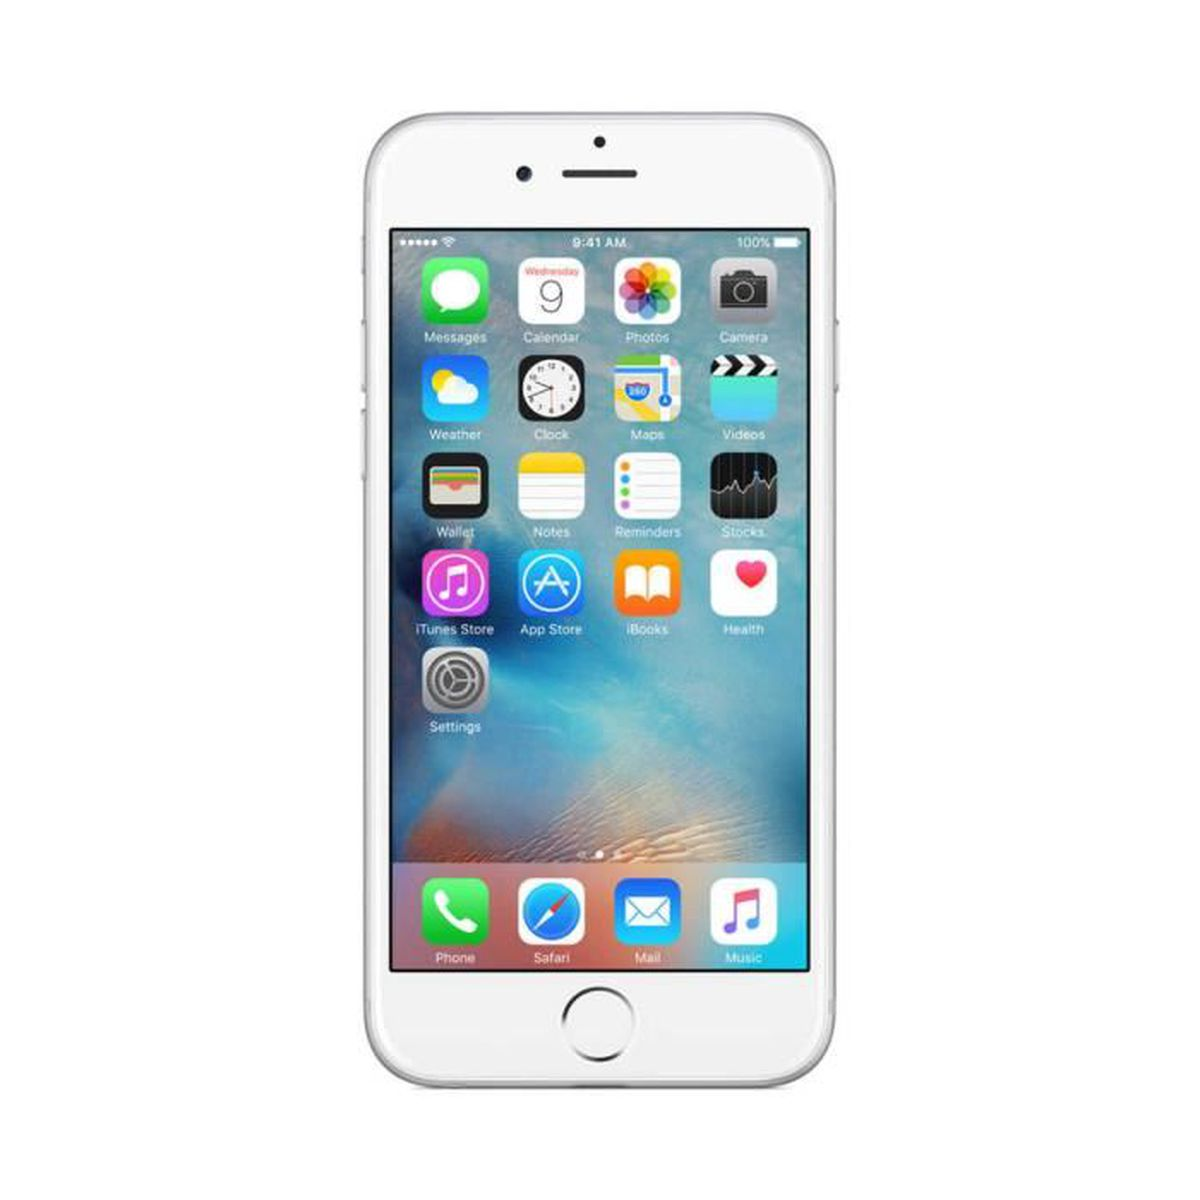 iphone 6 blanc 16go etat excellent achat smartphone recond pas cher avis et meilleur prix. Black Bedroom Furniture Sets. Home Design Ideas